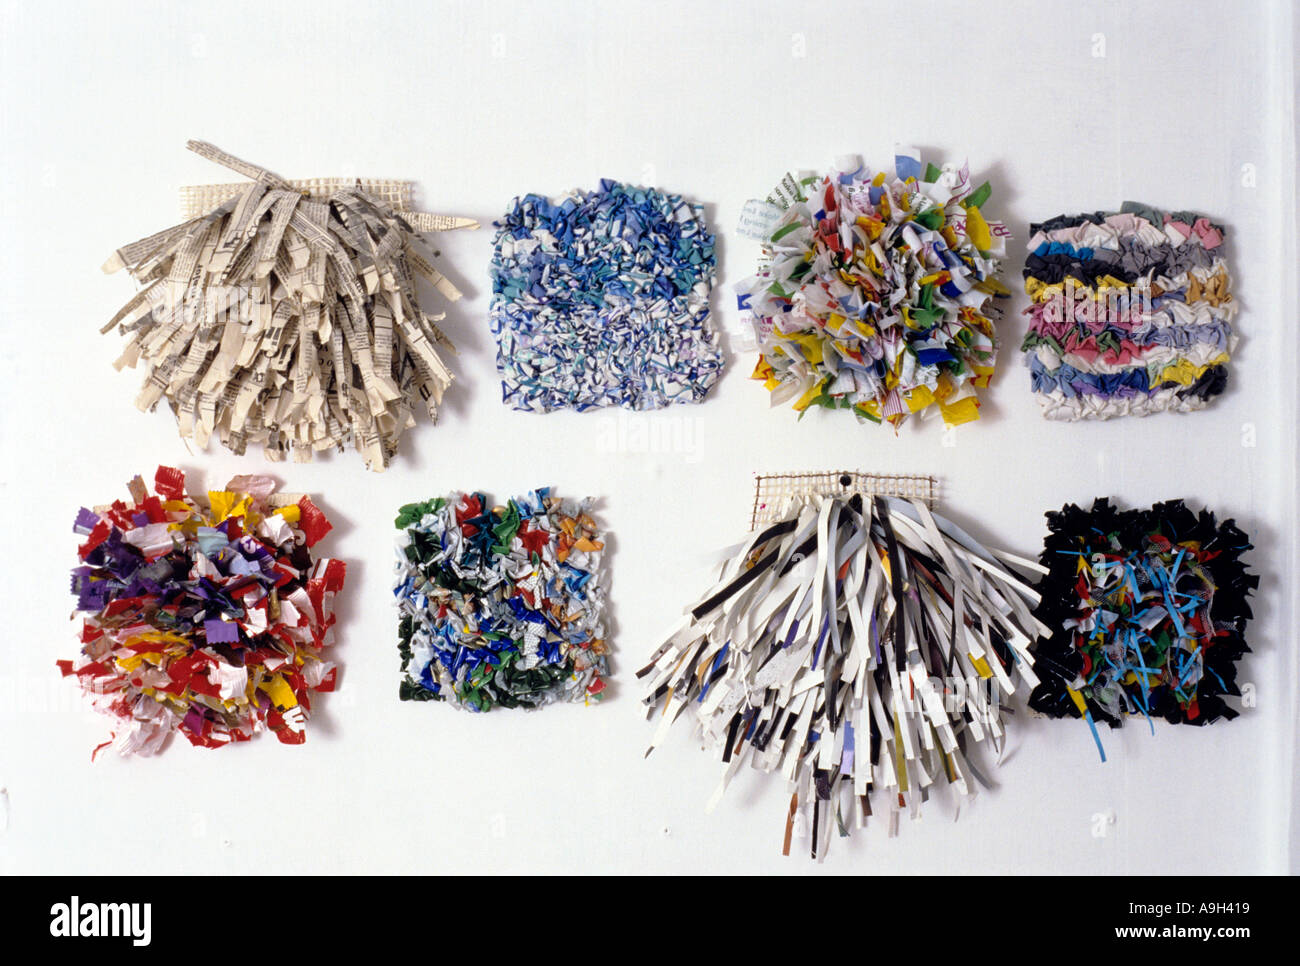 c008d93d2fb4fb Sample rugs made from recycled waste paper and rags by Gerry Copp. - Stock  Image